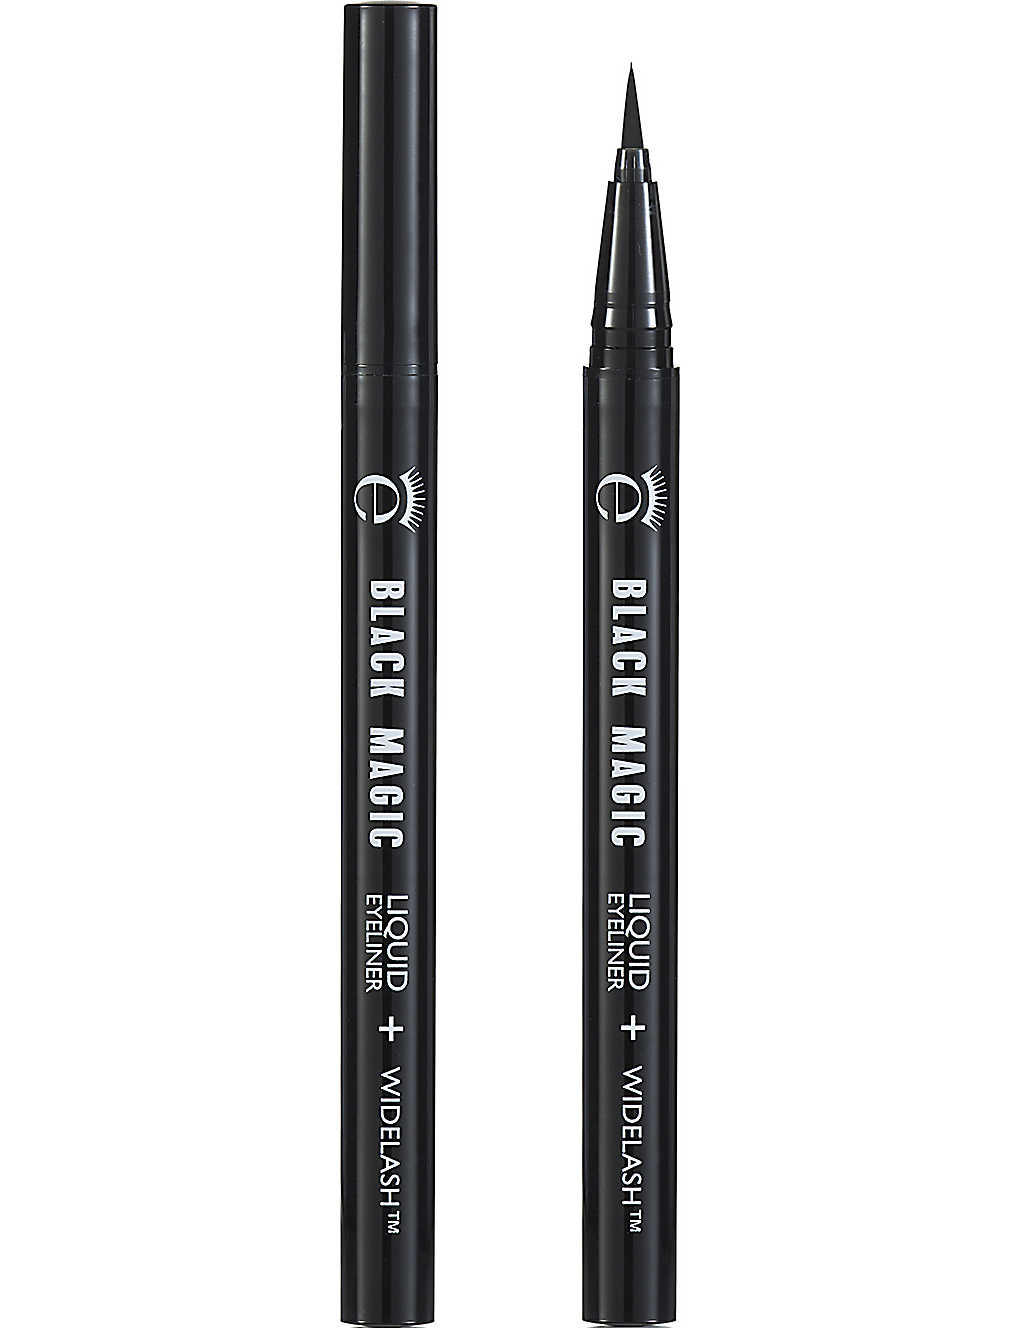 EYEKO: Black Magic Eyeliner